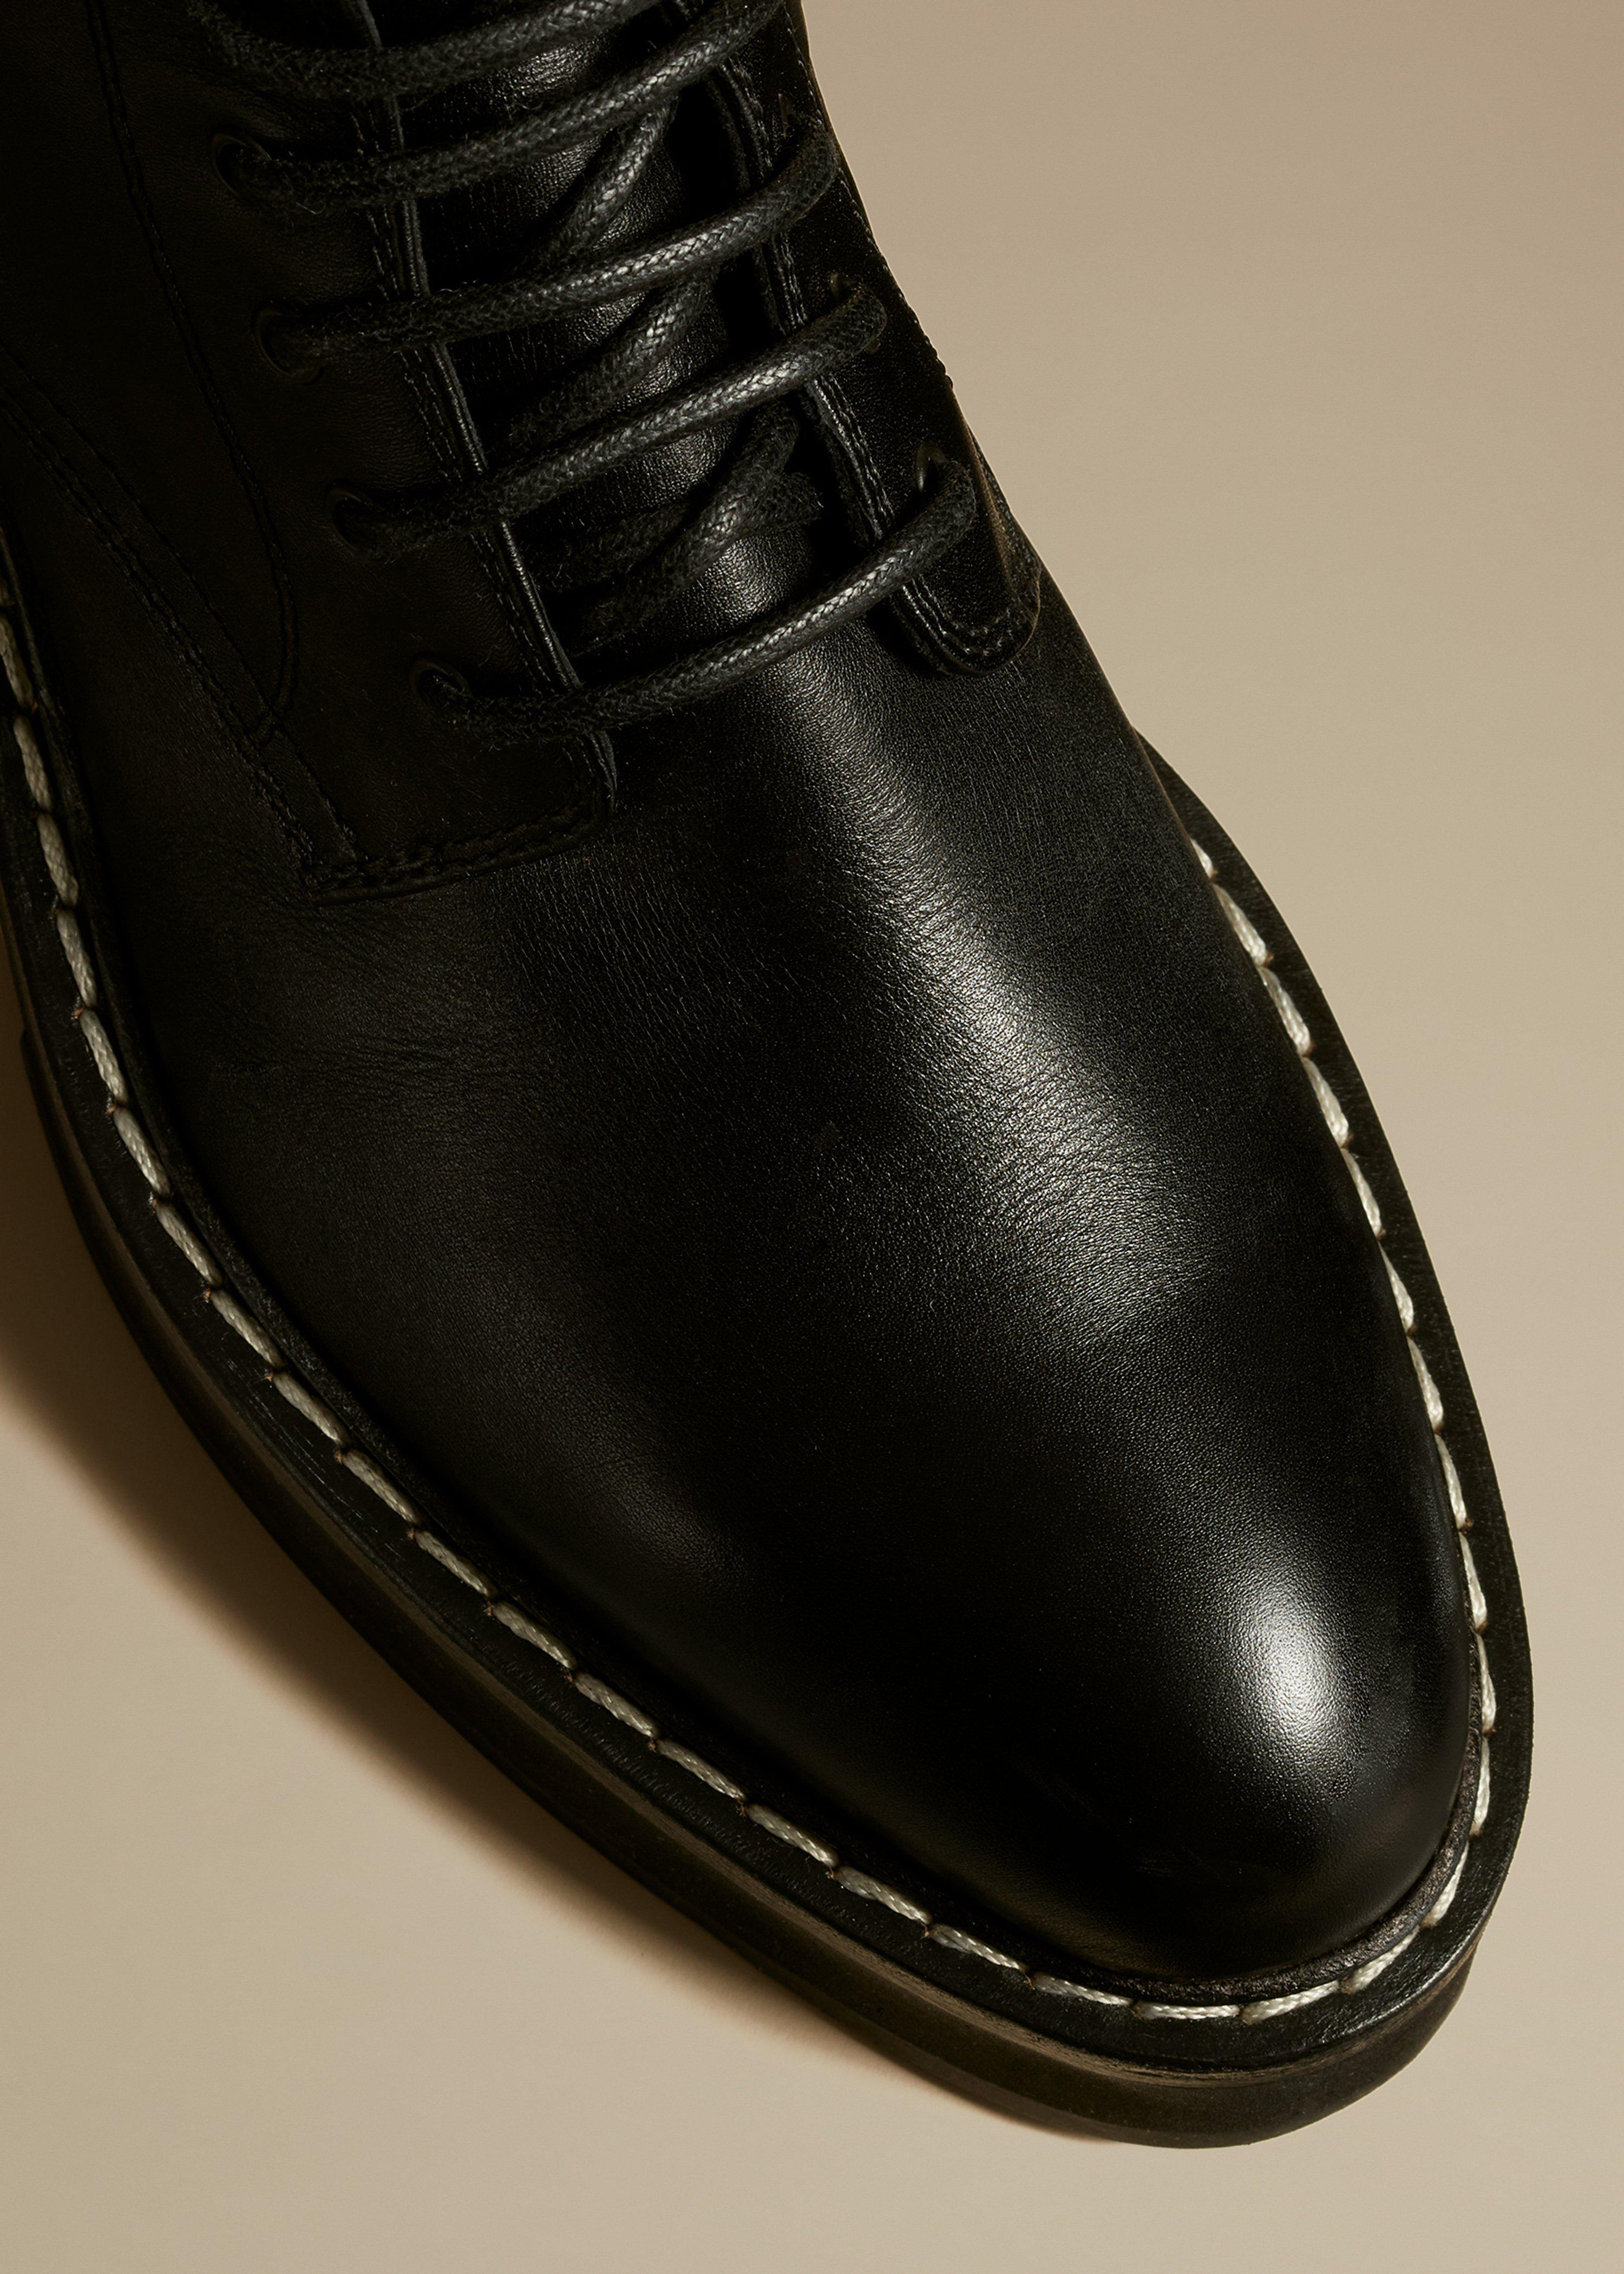 The Cody Boot in Black Leather 2